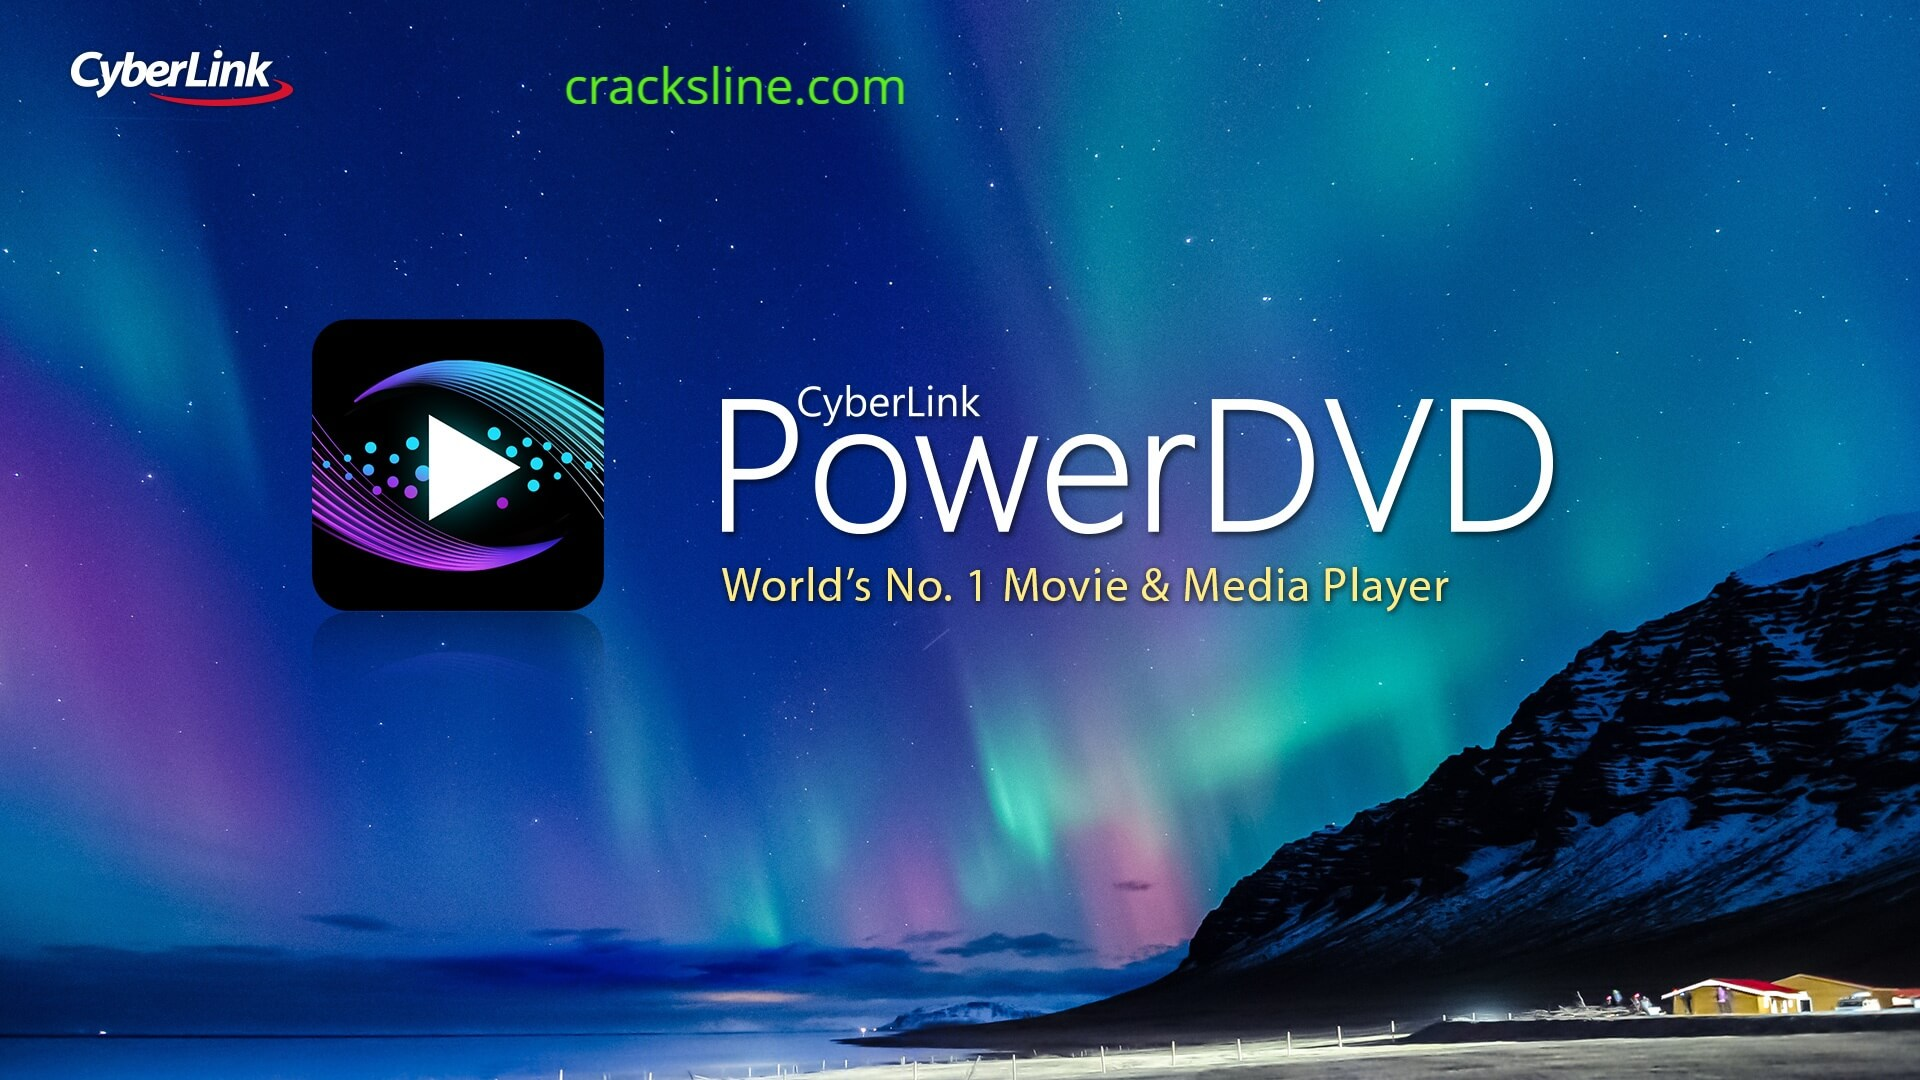 Cyberlink Power DVD Crack logo